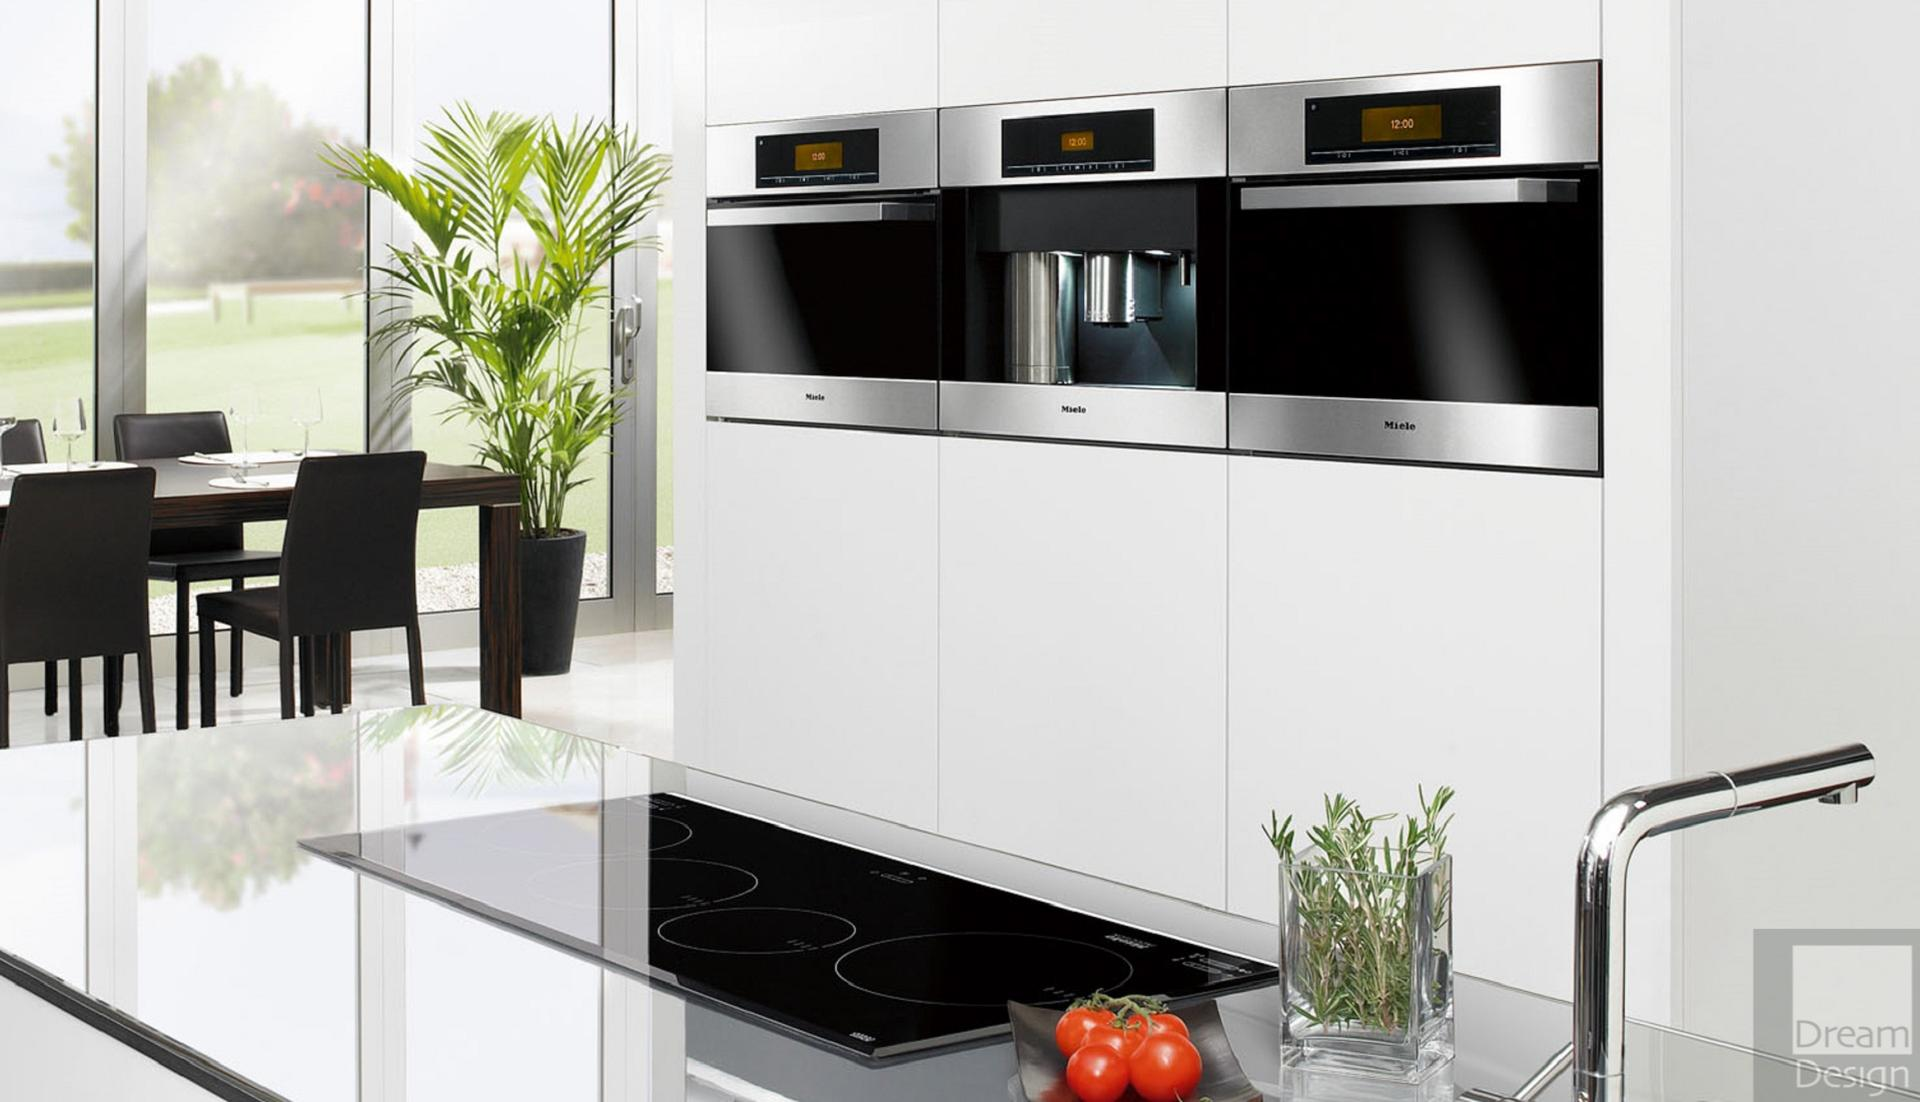 Miele appliances dream design interiors ltd for Küchen miele